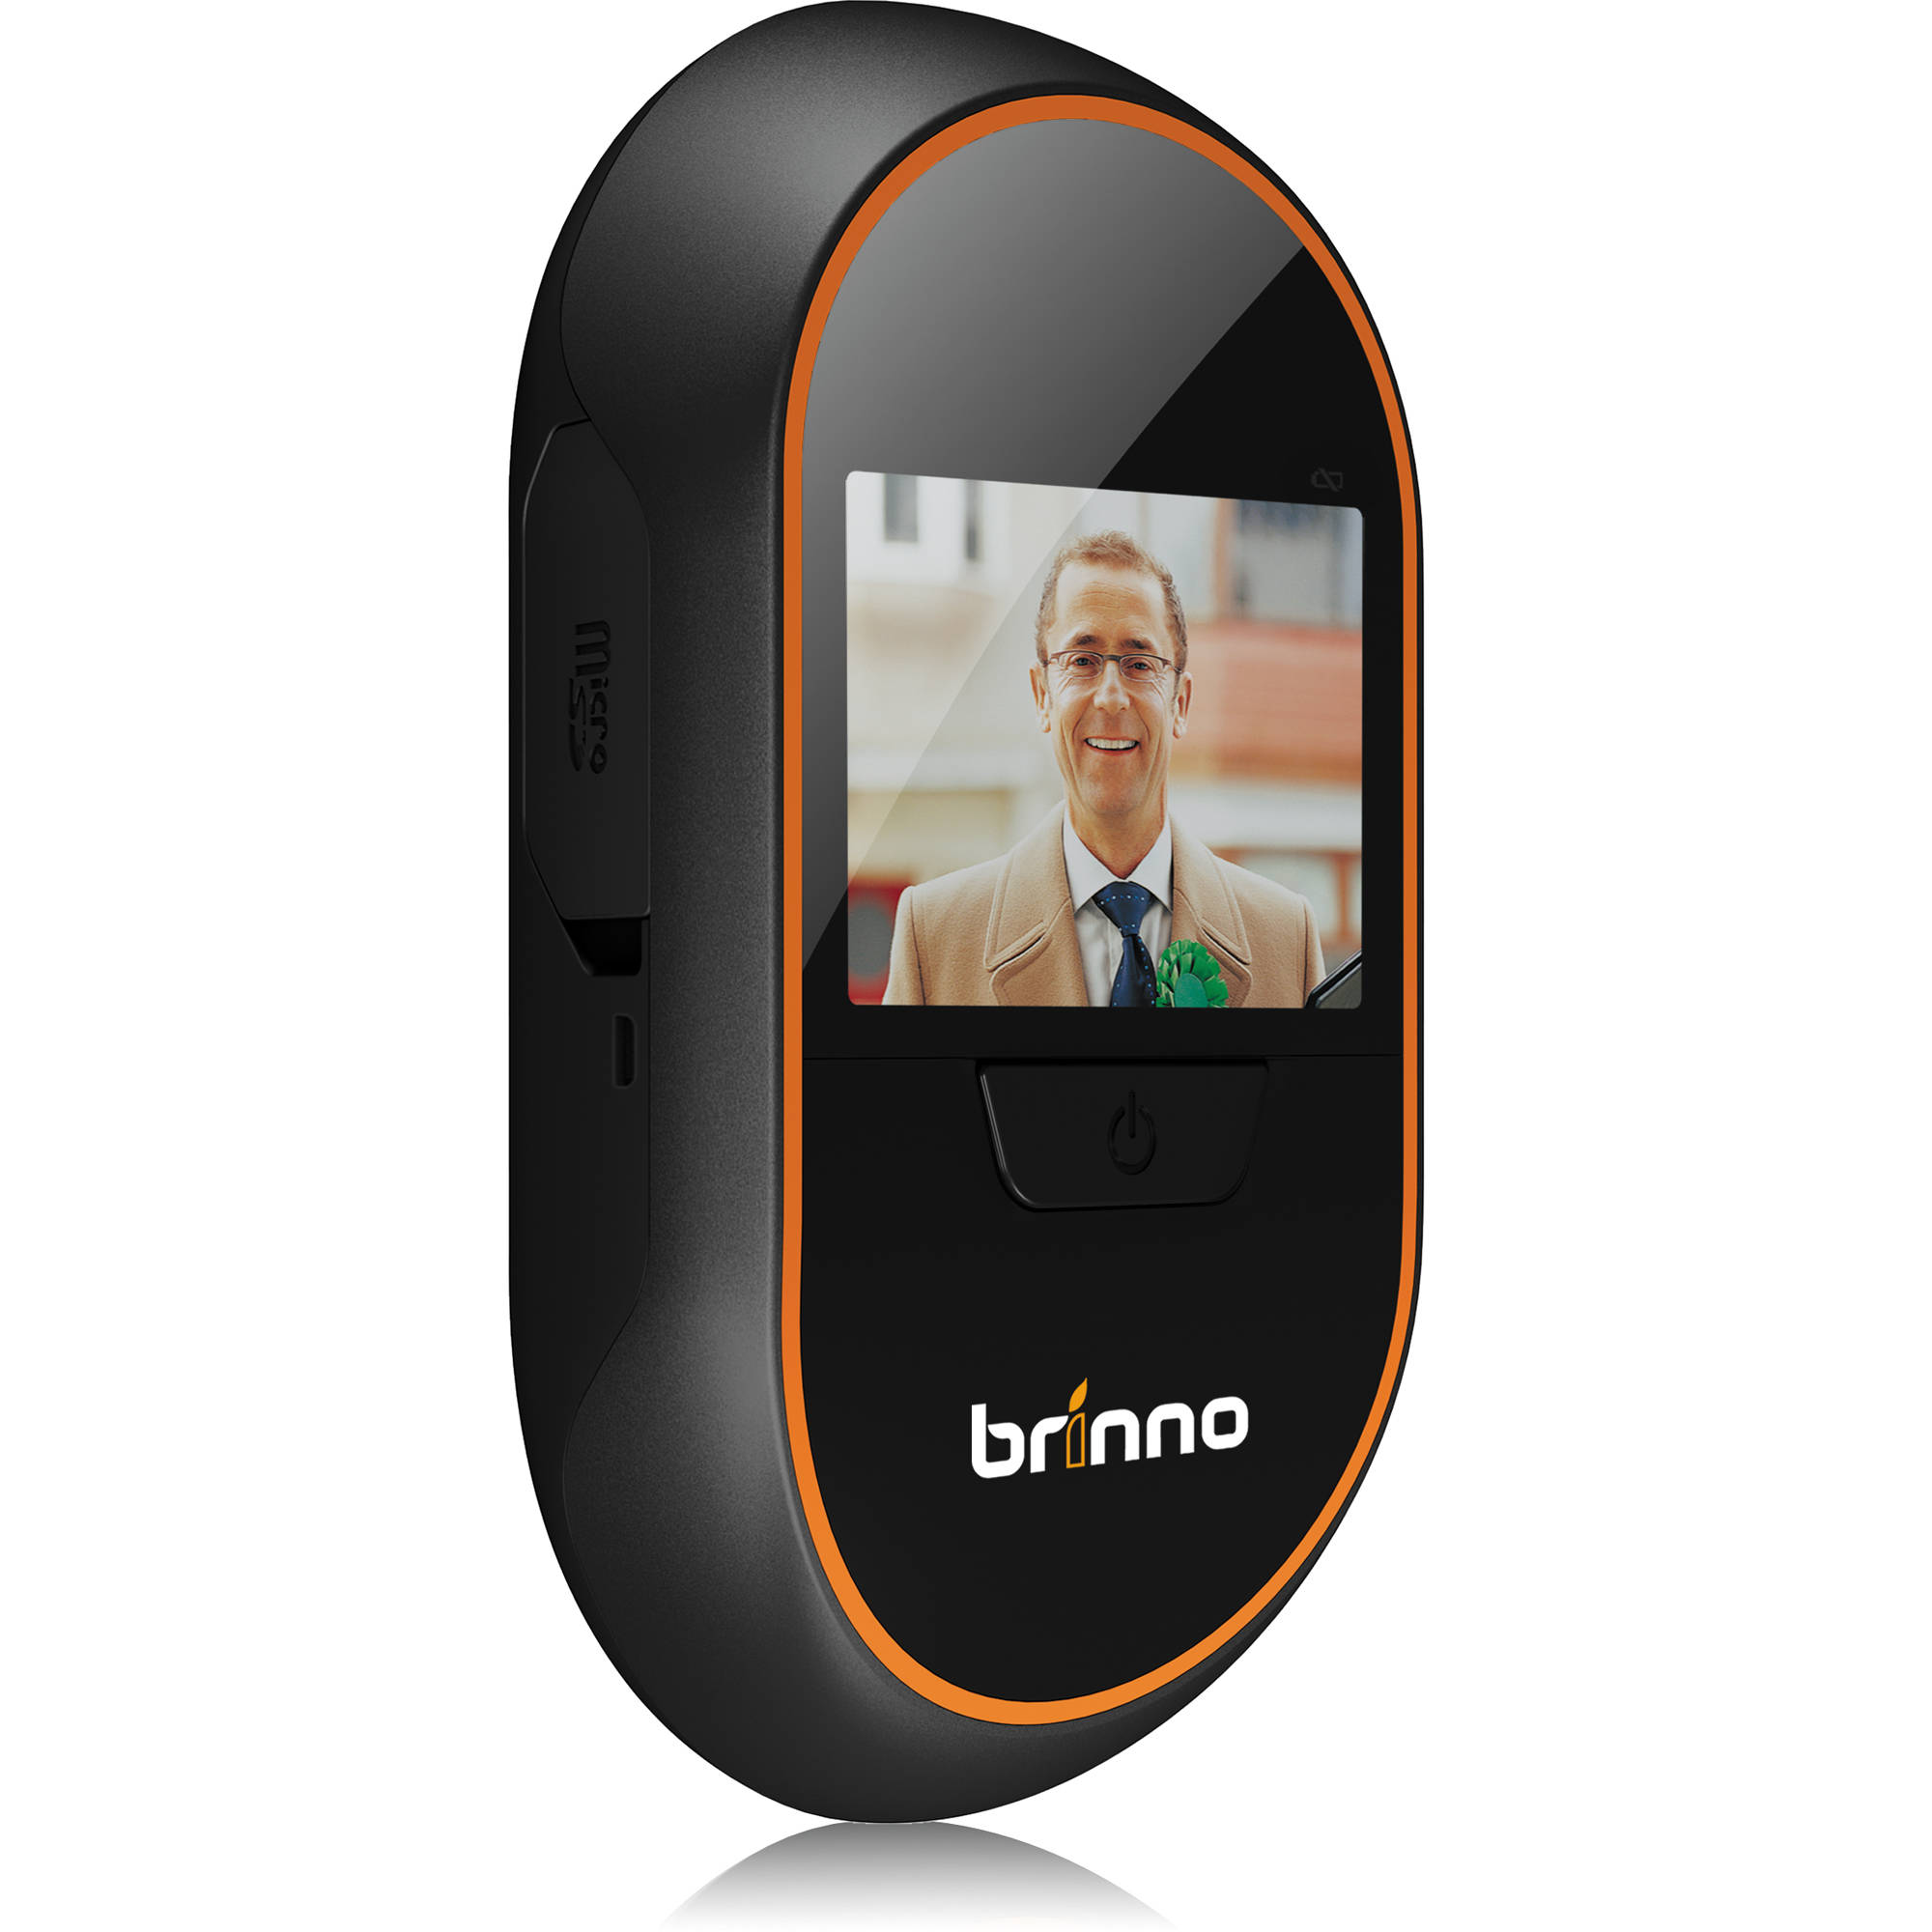 brinno phv mac 1 3mp peephole camera dvr and display phv